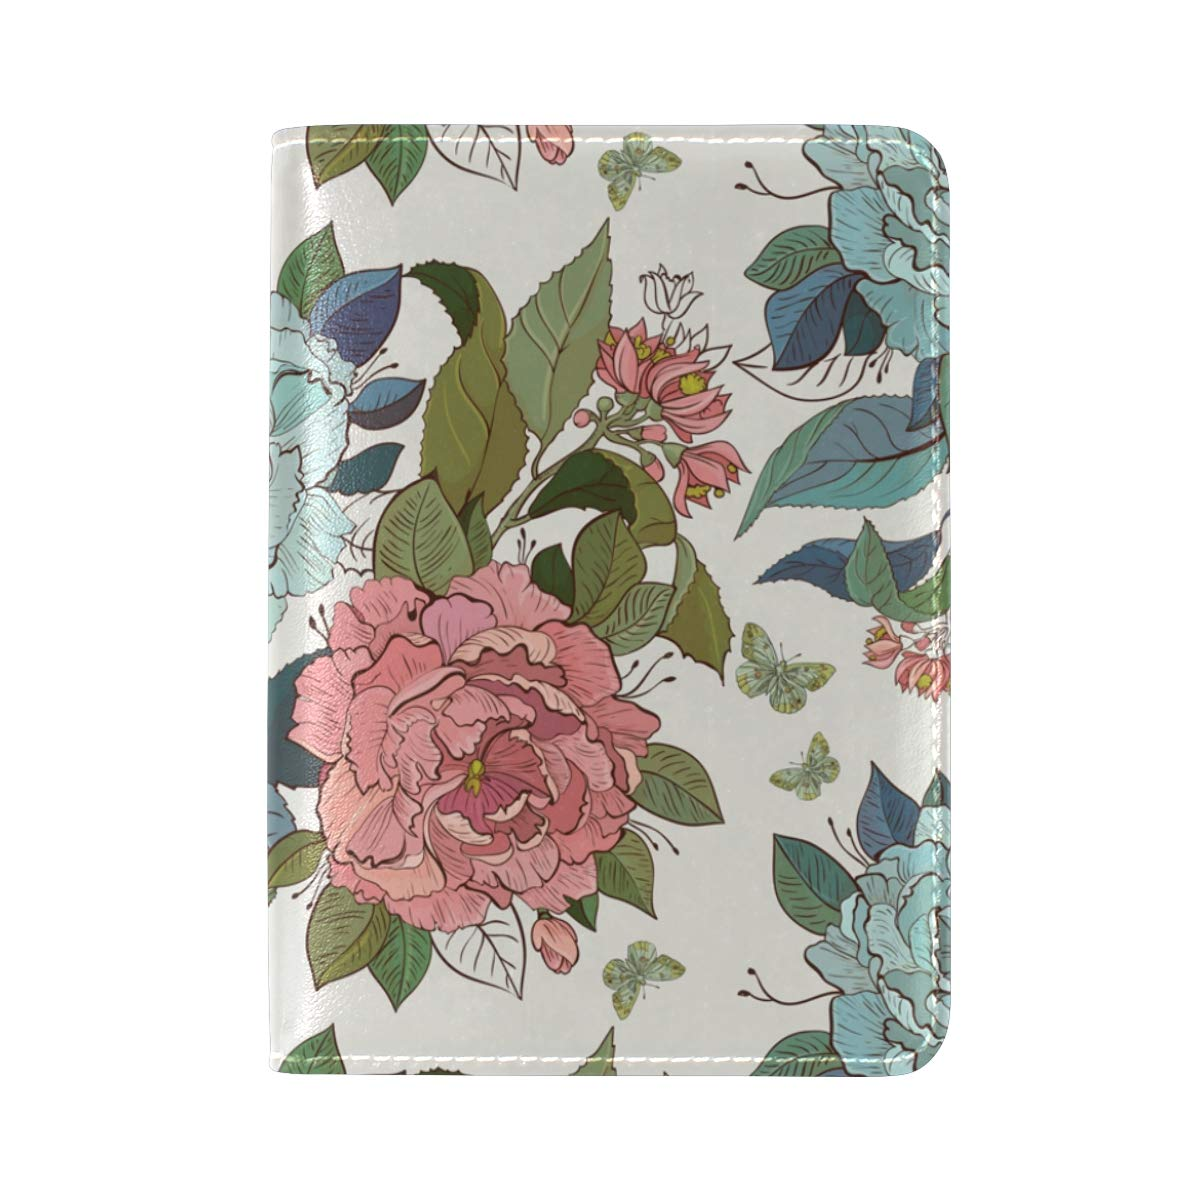 Floral Seamless Roses Butterfly Pattern One Pocket Leather Passport Holder Cover Case Protector for Men Women Travel